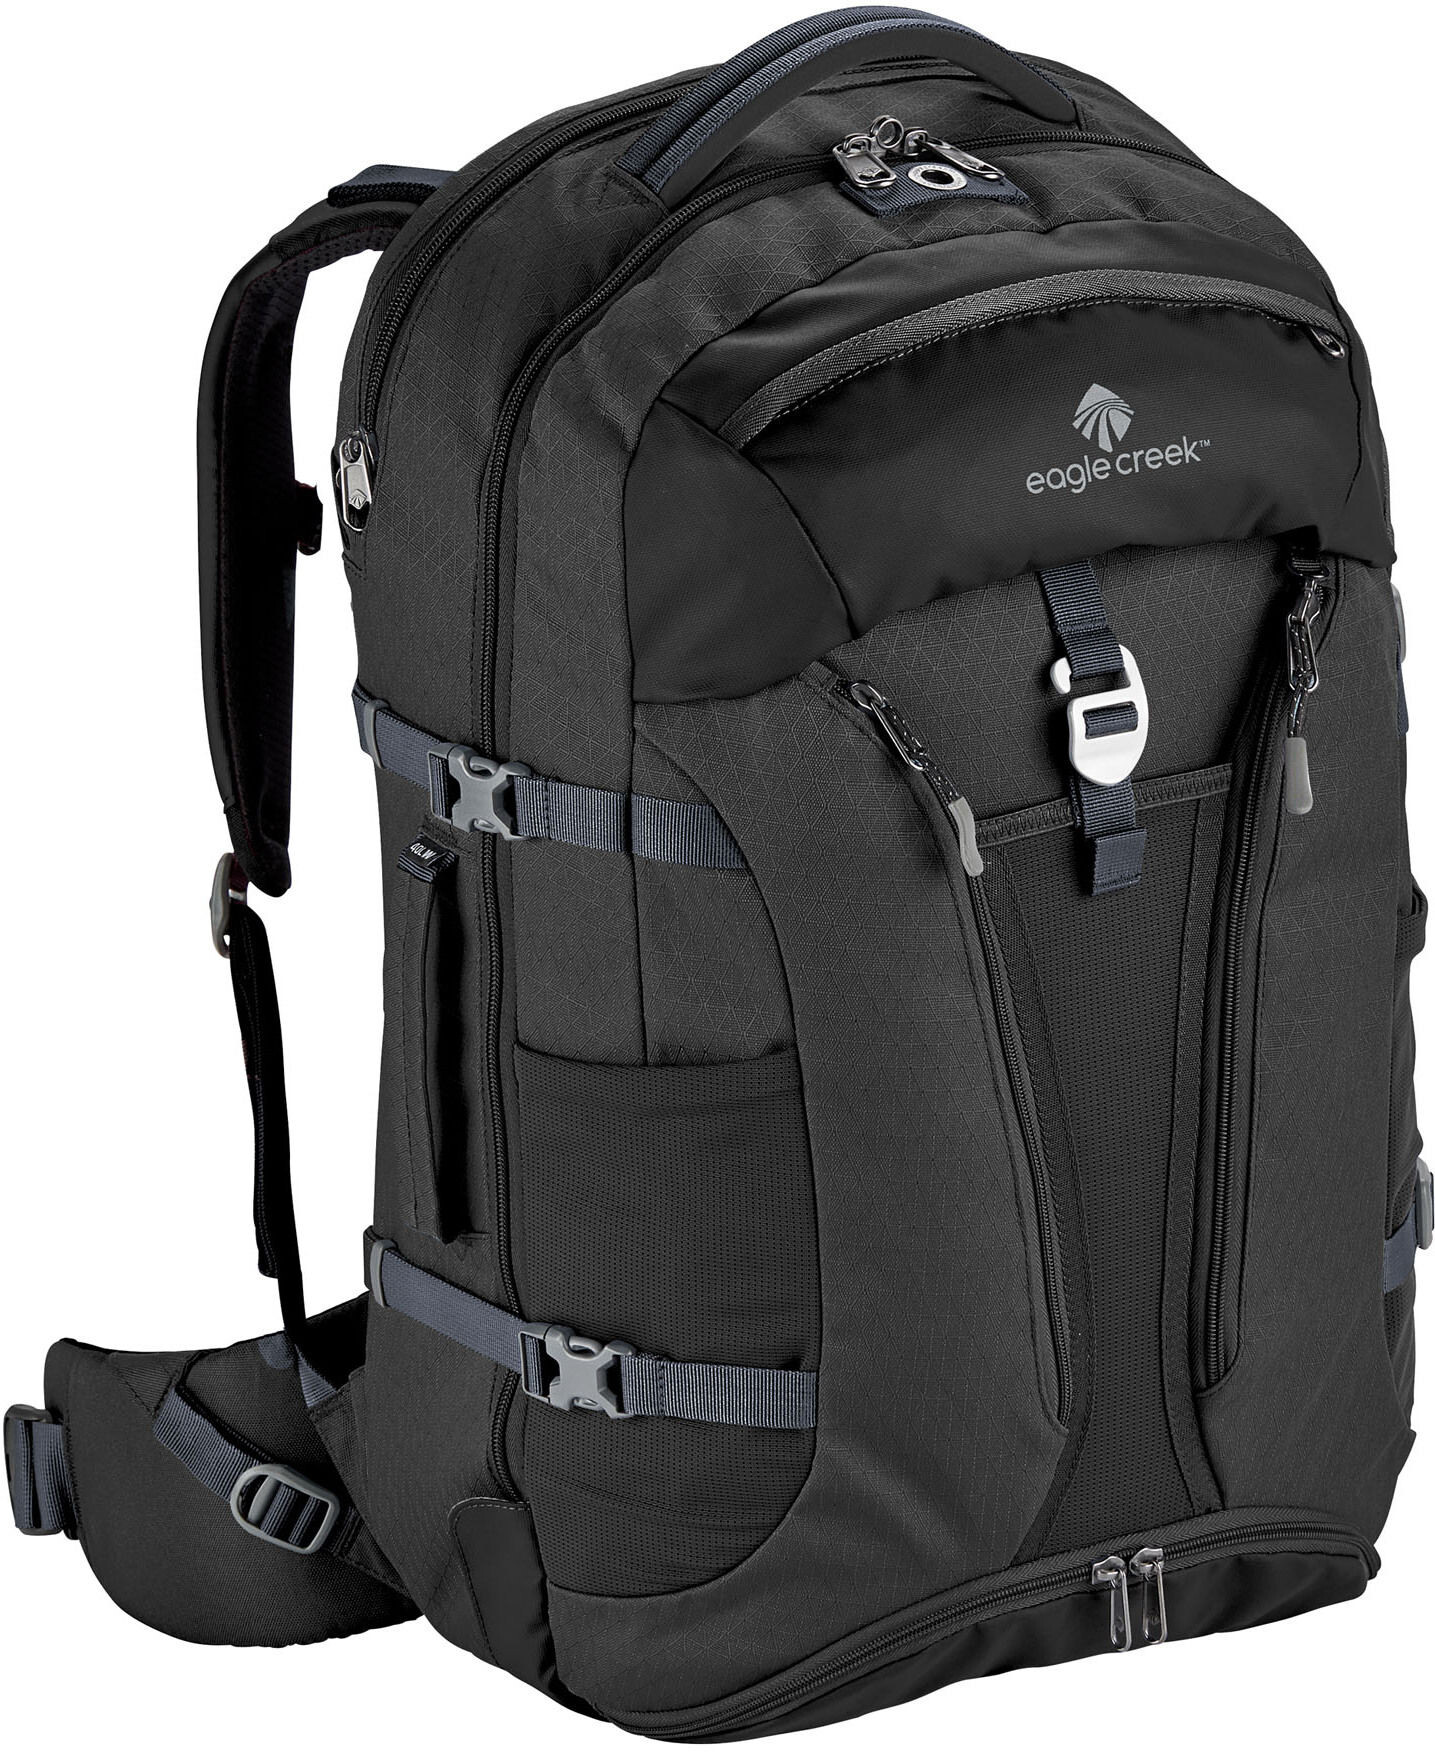 Global Sur Dos Campz Noir Creek Femme Eagle Sac 40l À Companion qFXfz5